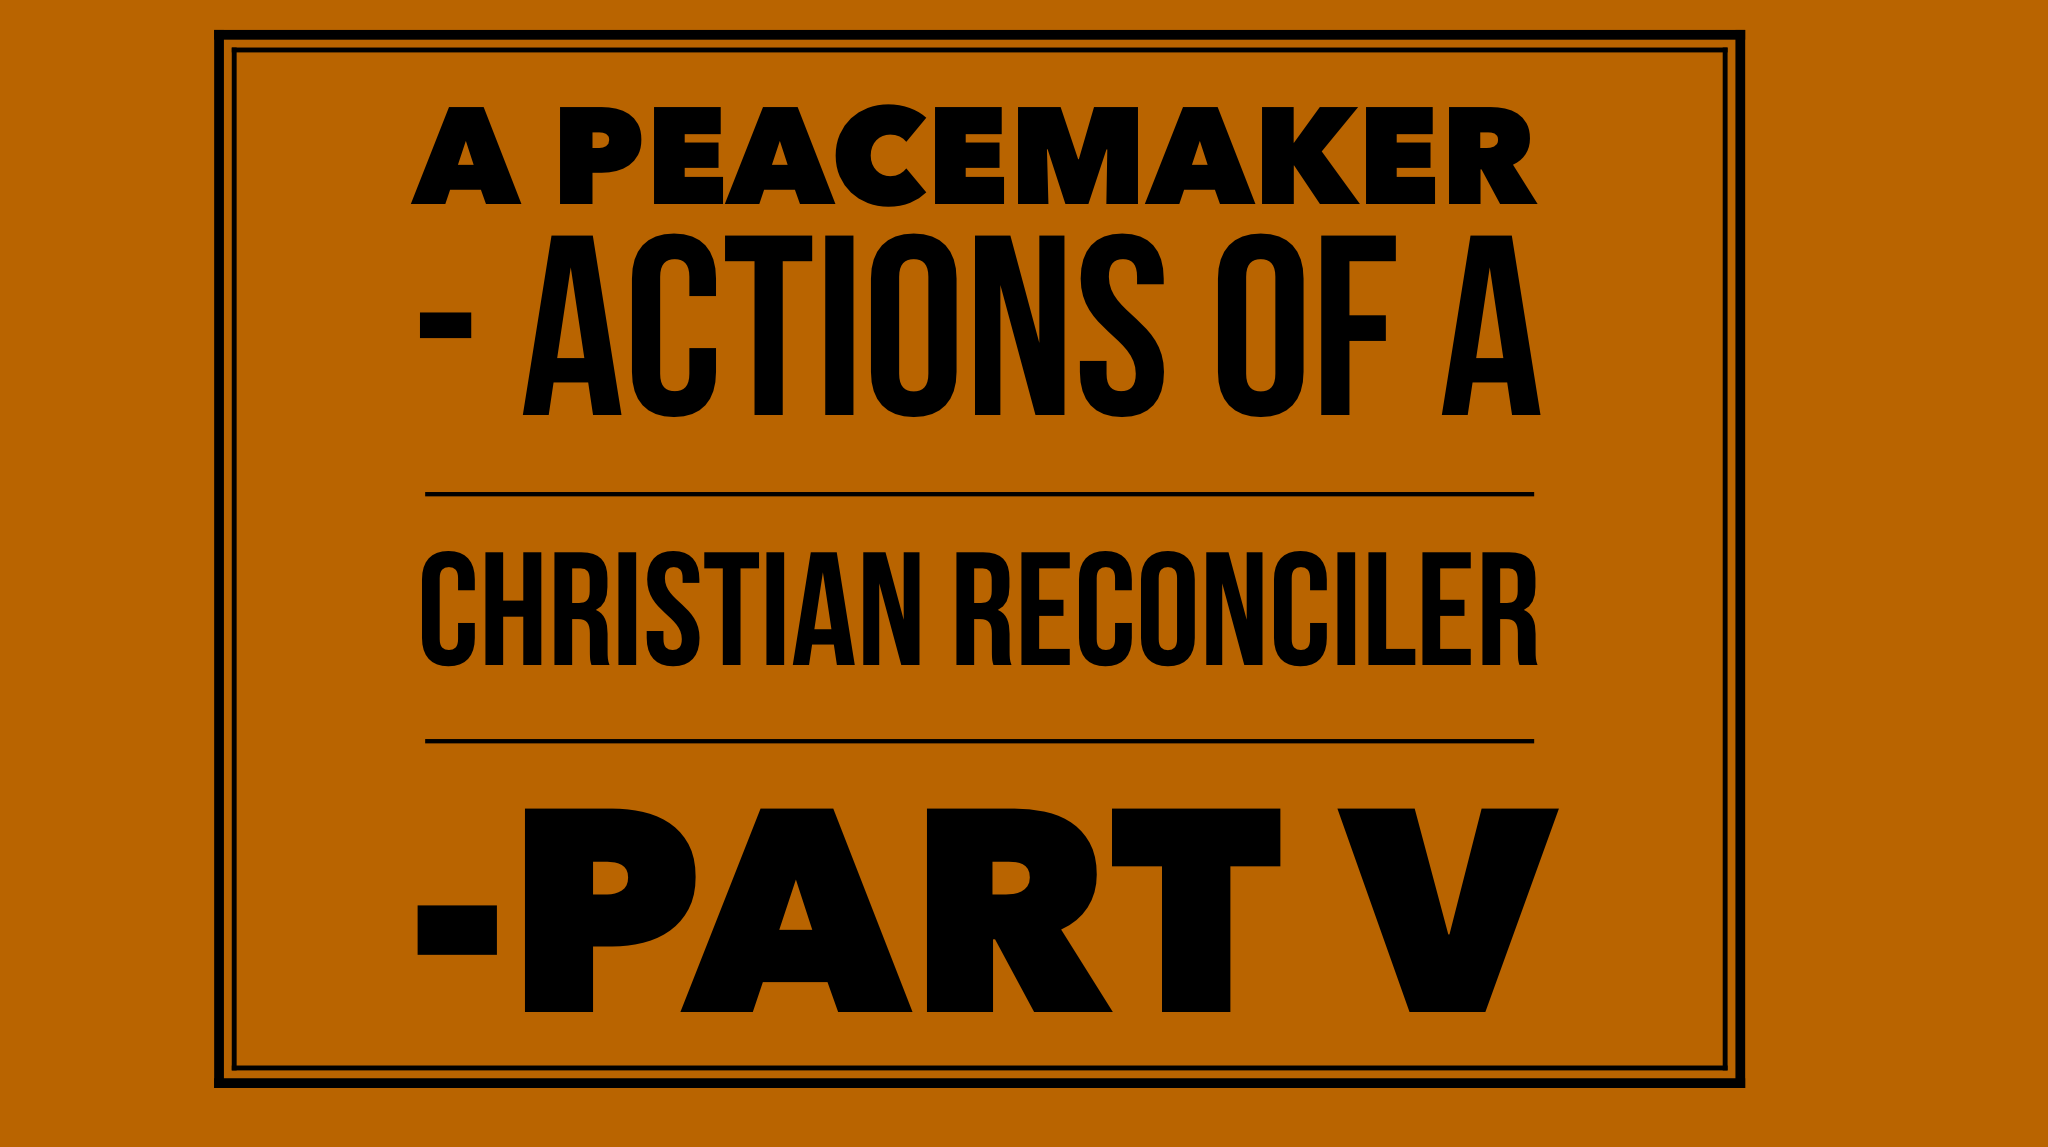 A Peacemaker - Actions of a christian reconciler Part V